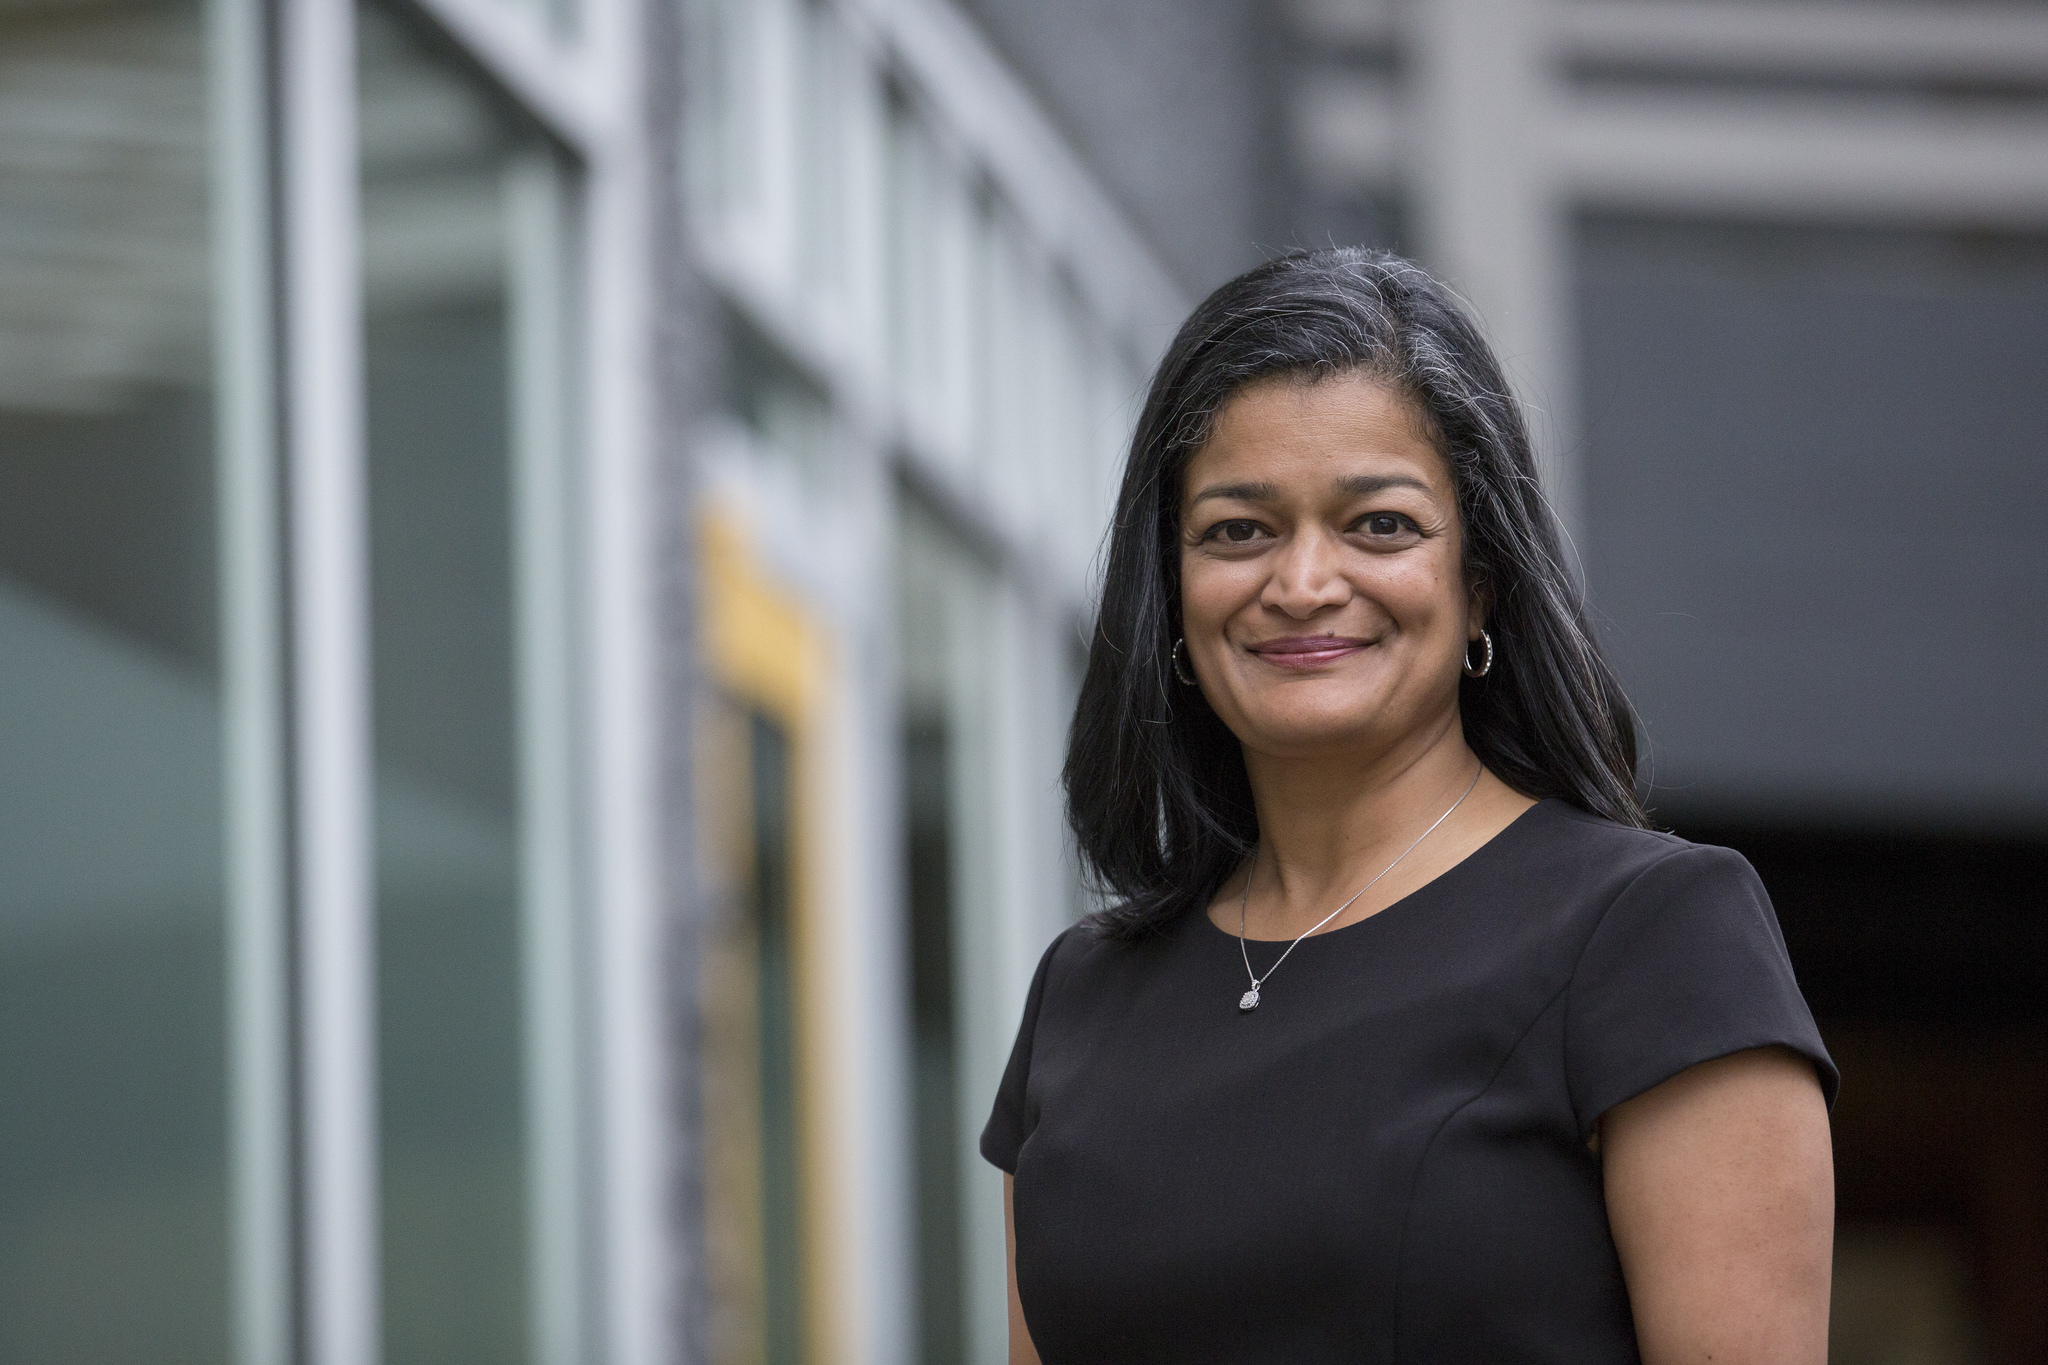 Pramila Jayapal Is the First Indian-American Woman in the U.S. House of Representatives